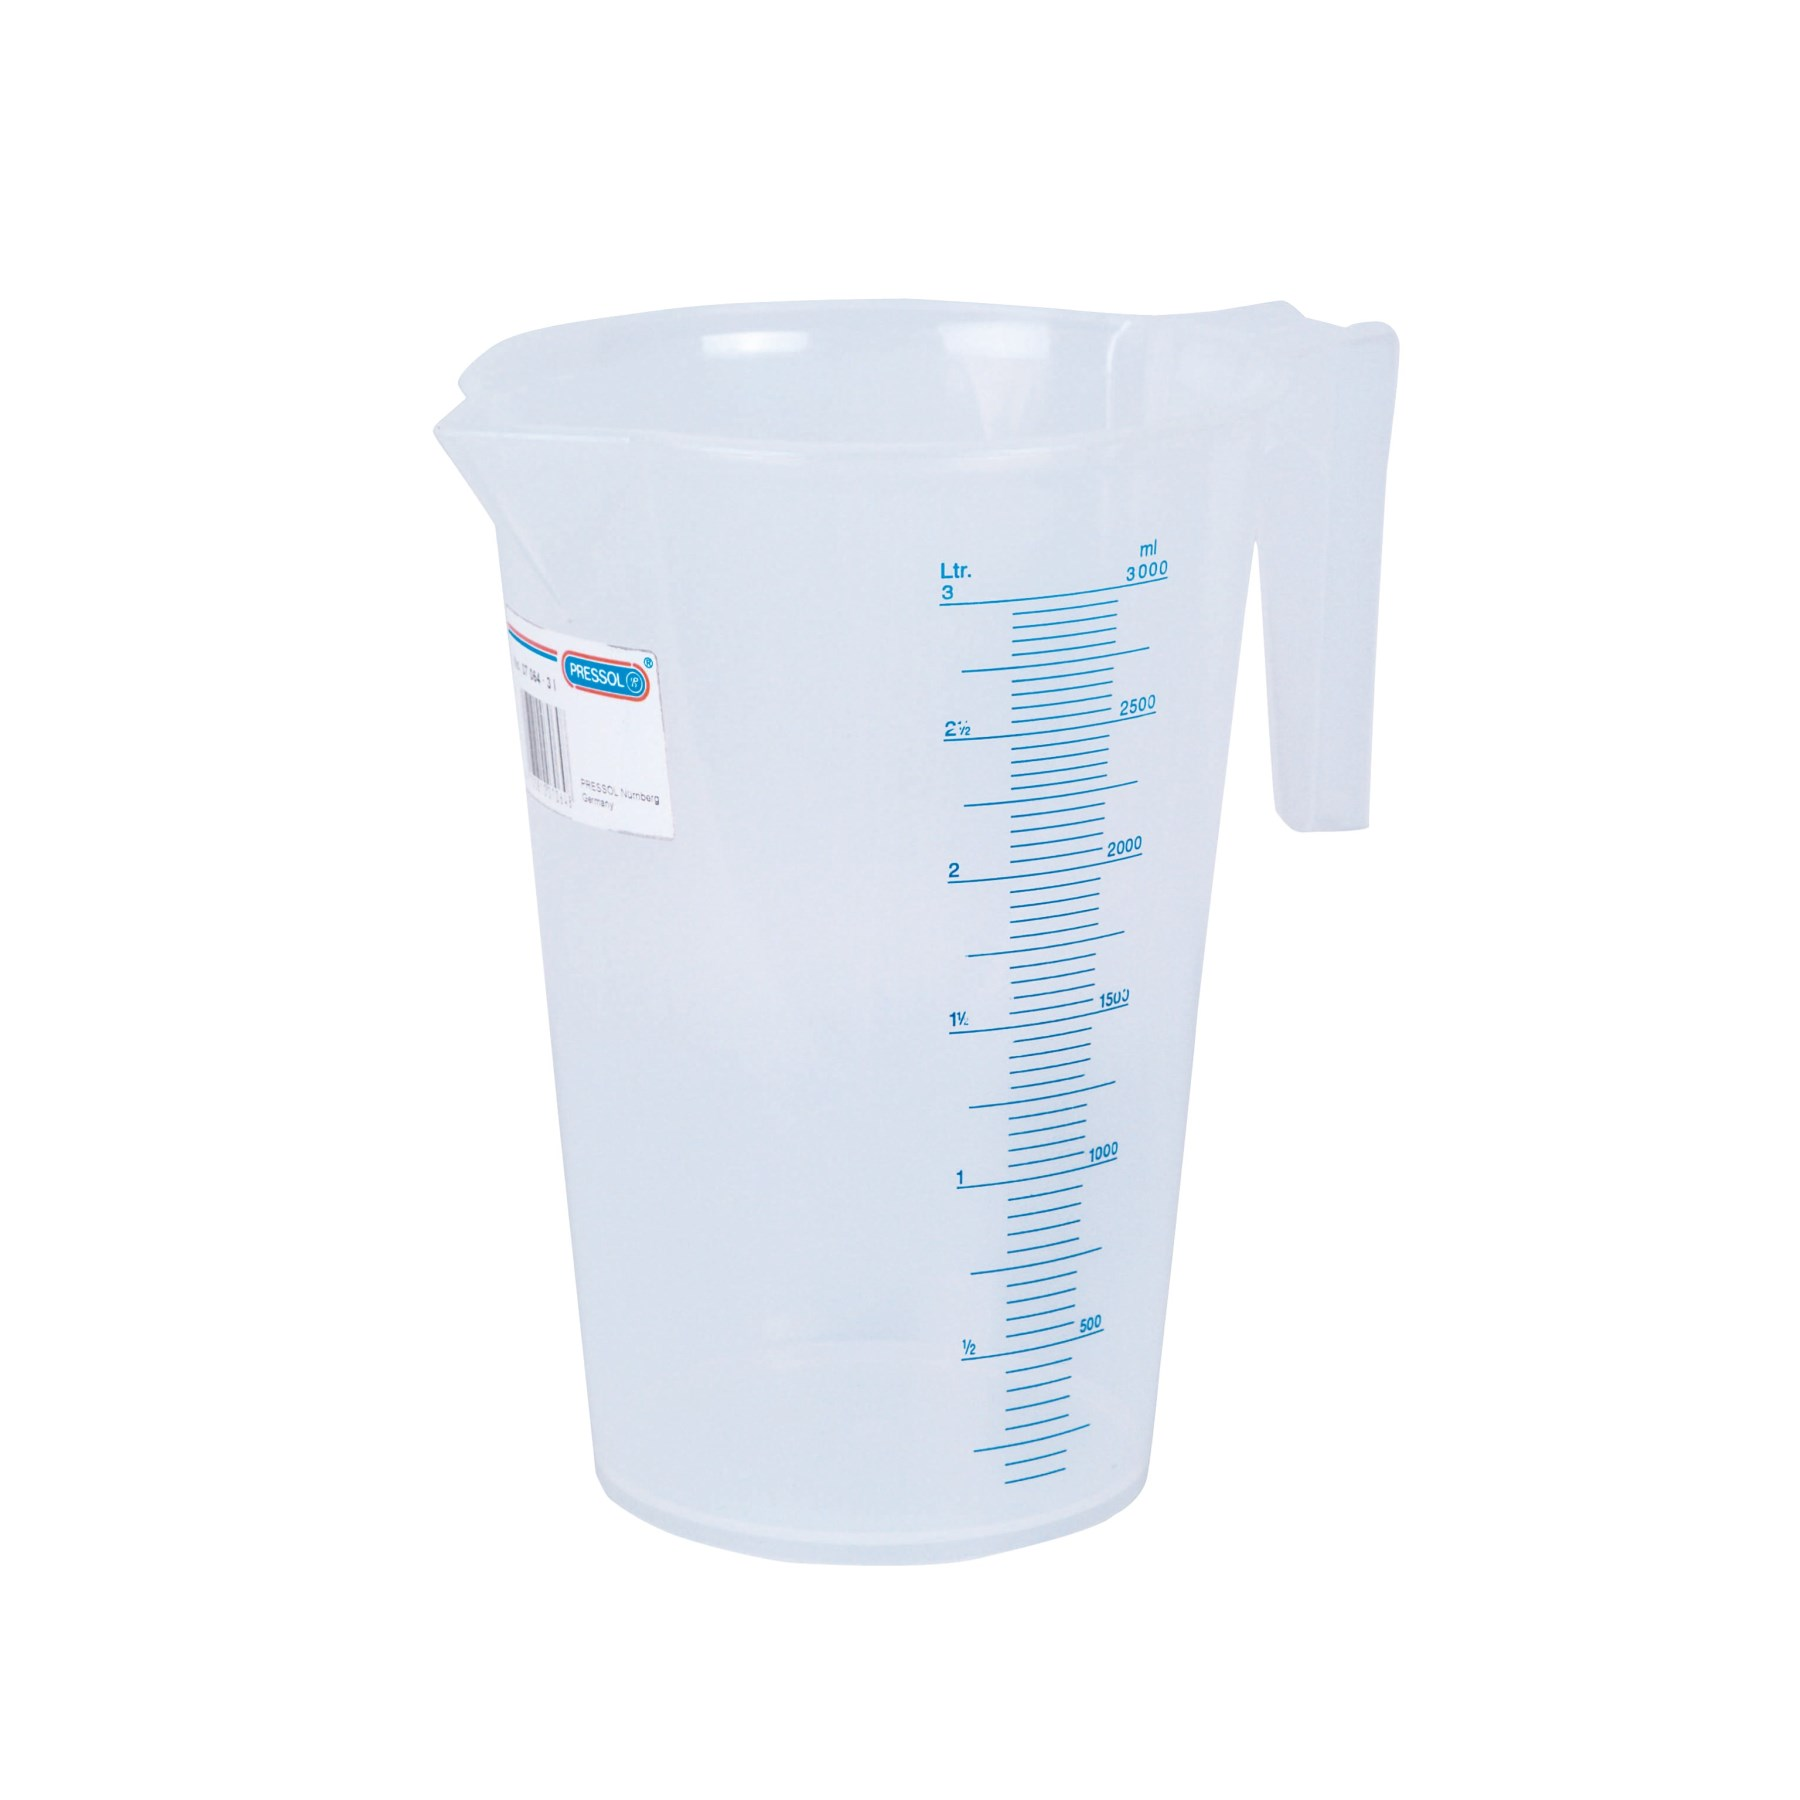 1052438 - Messbecher Kunststoff transparent 3l